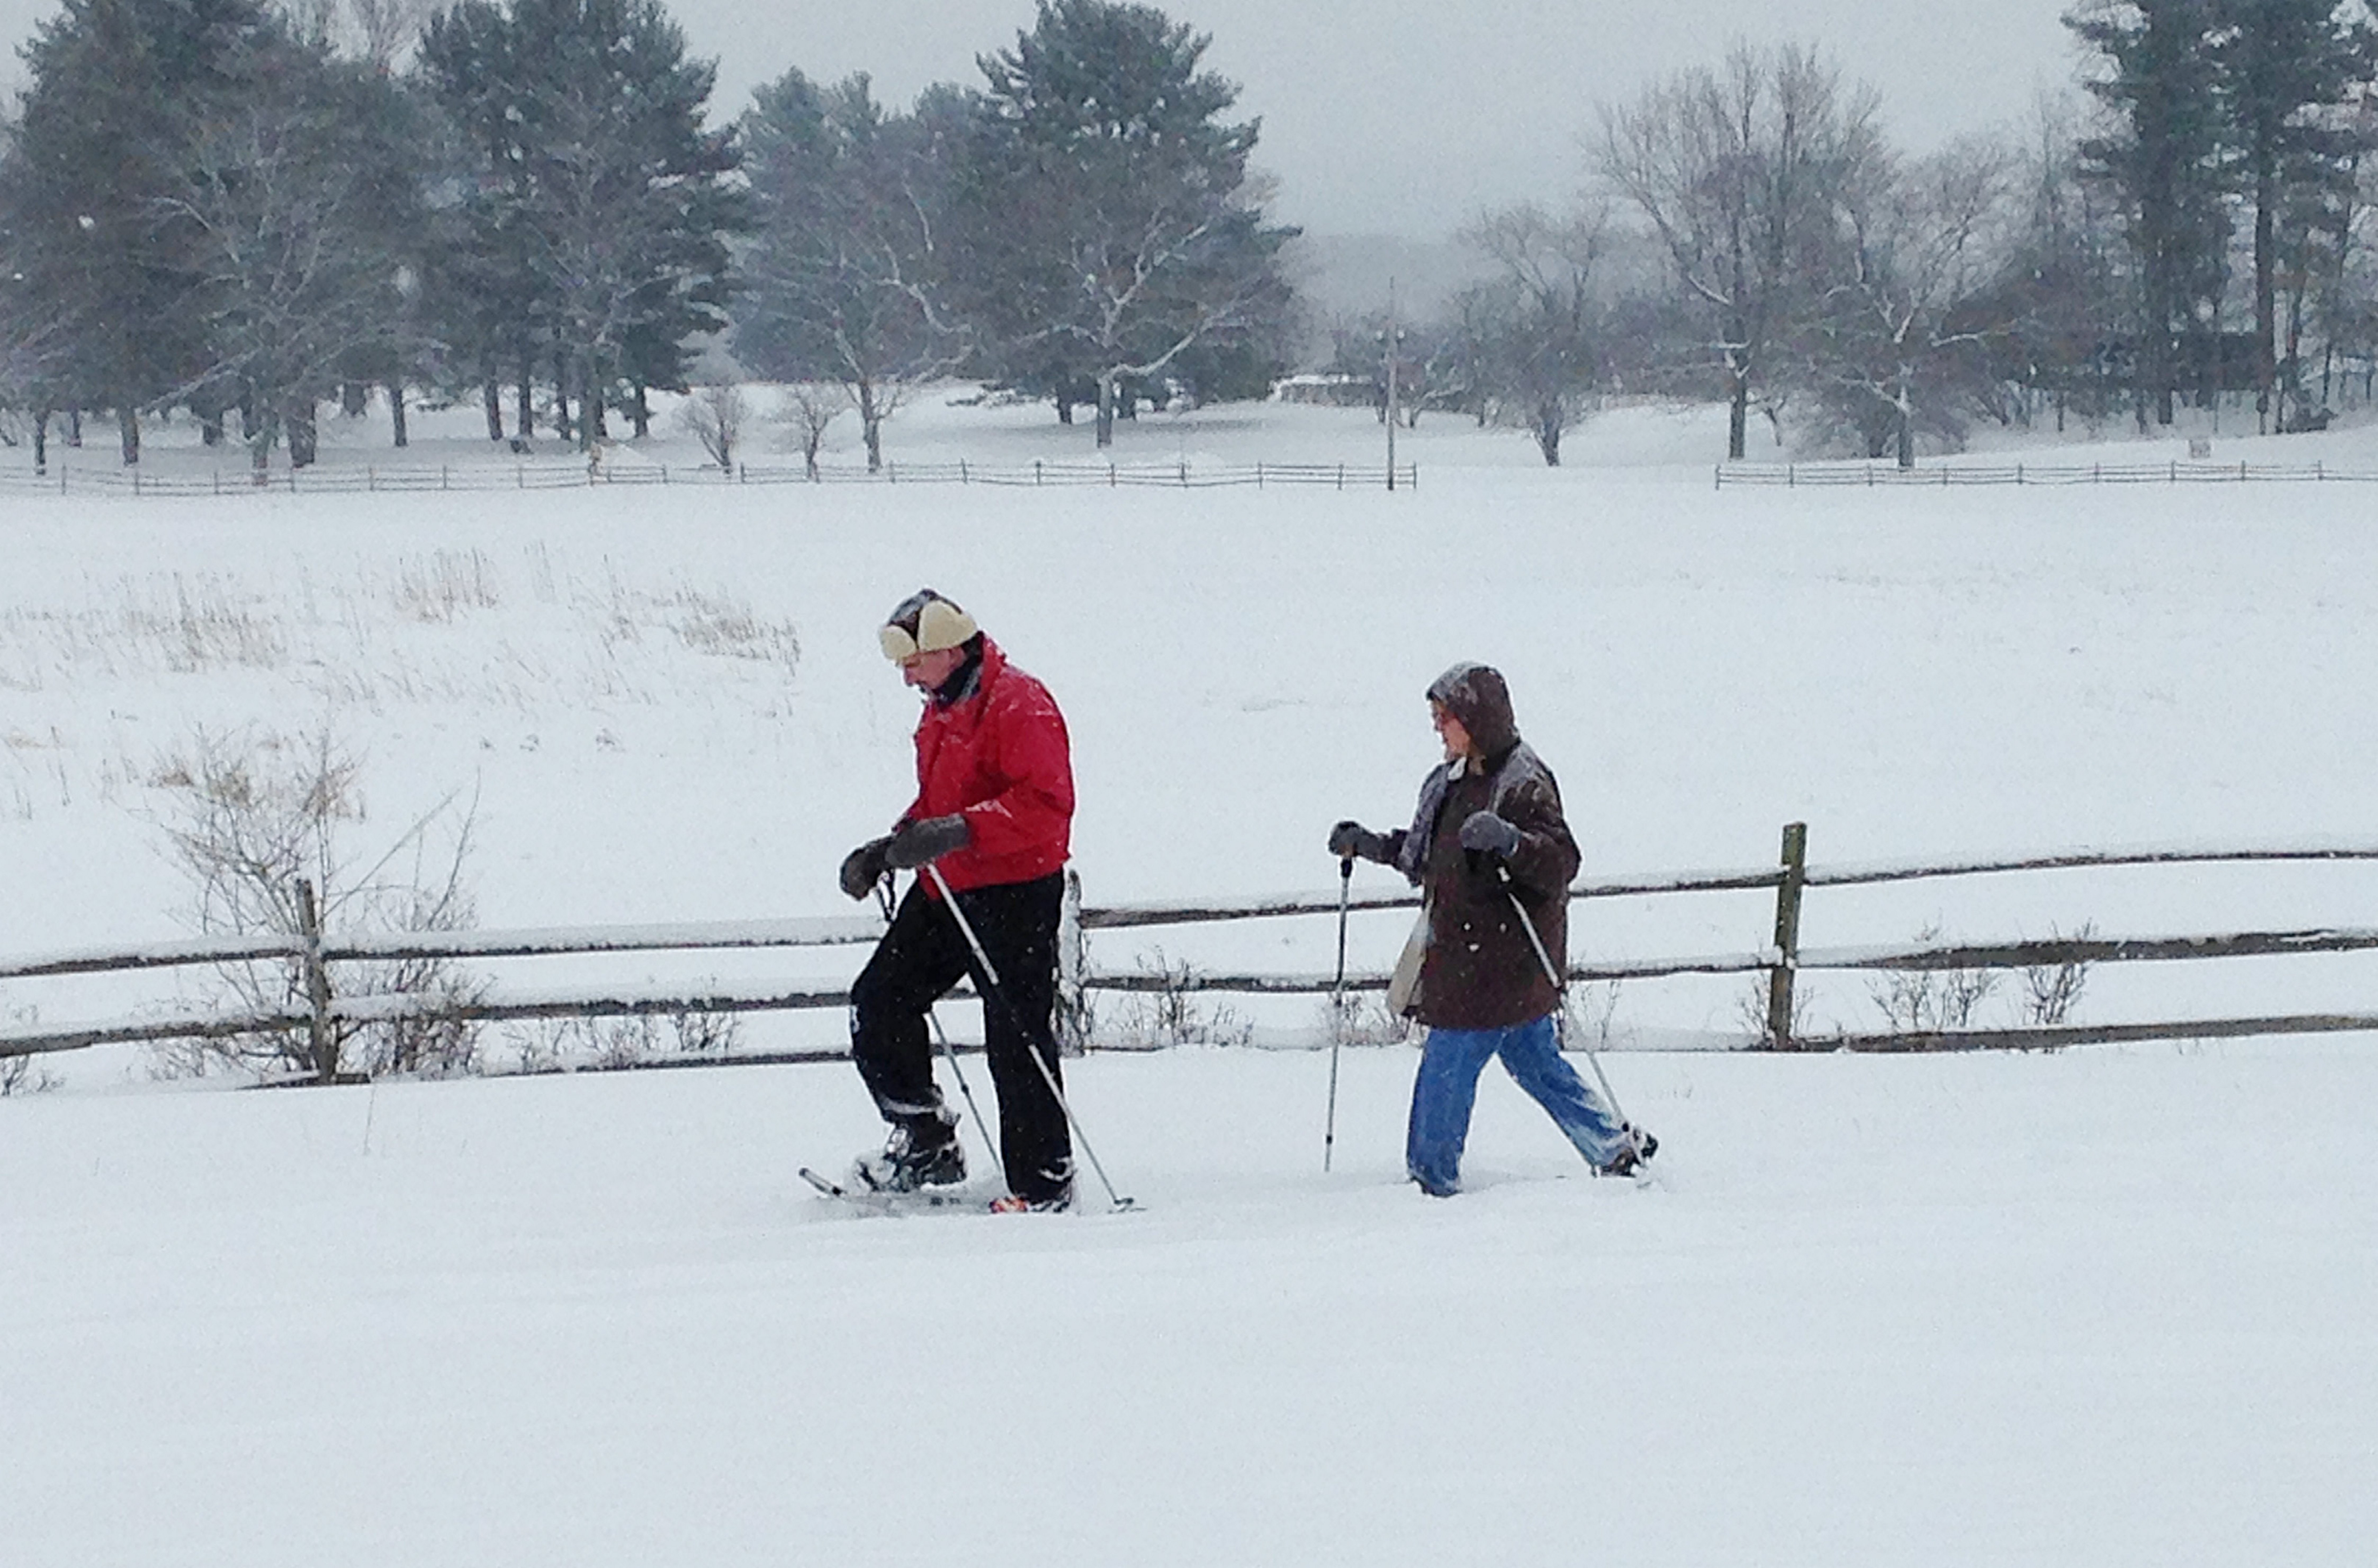 Steve and Rosemary Kelly cross-country ski at Knox Farm in East Aurora, one of Western New York's top destinations for the winter activity.